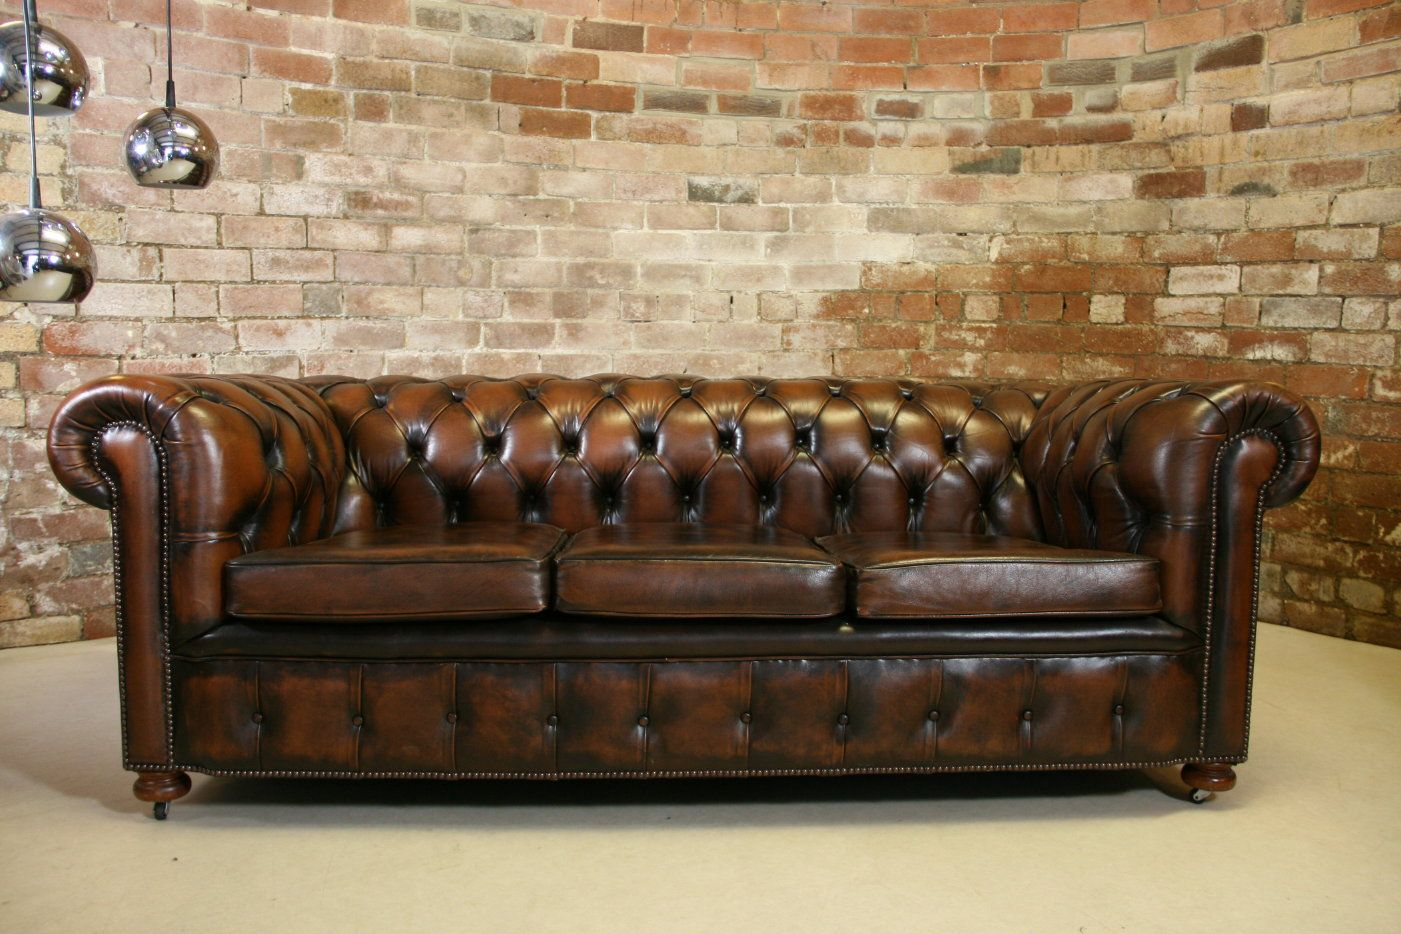 Chesterfield Suites Leather Chesterfield Sofa In 2019 Apartment Sofa Chesterfield